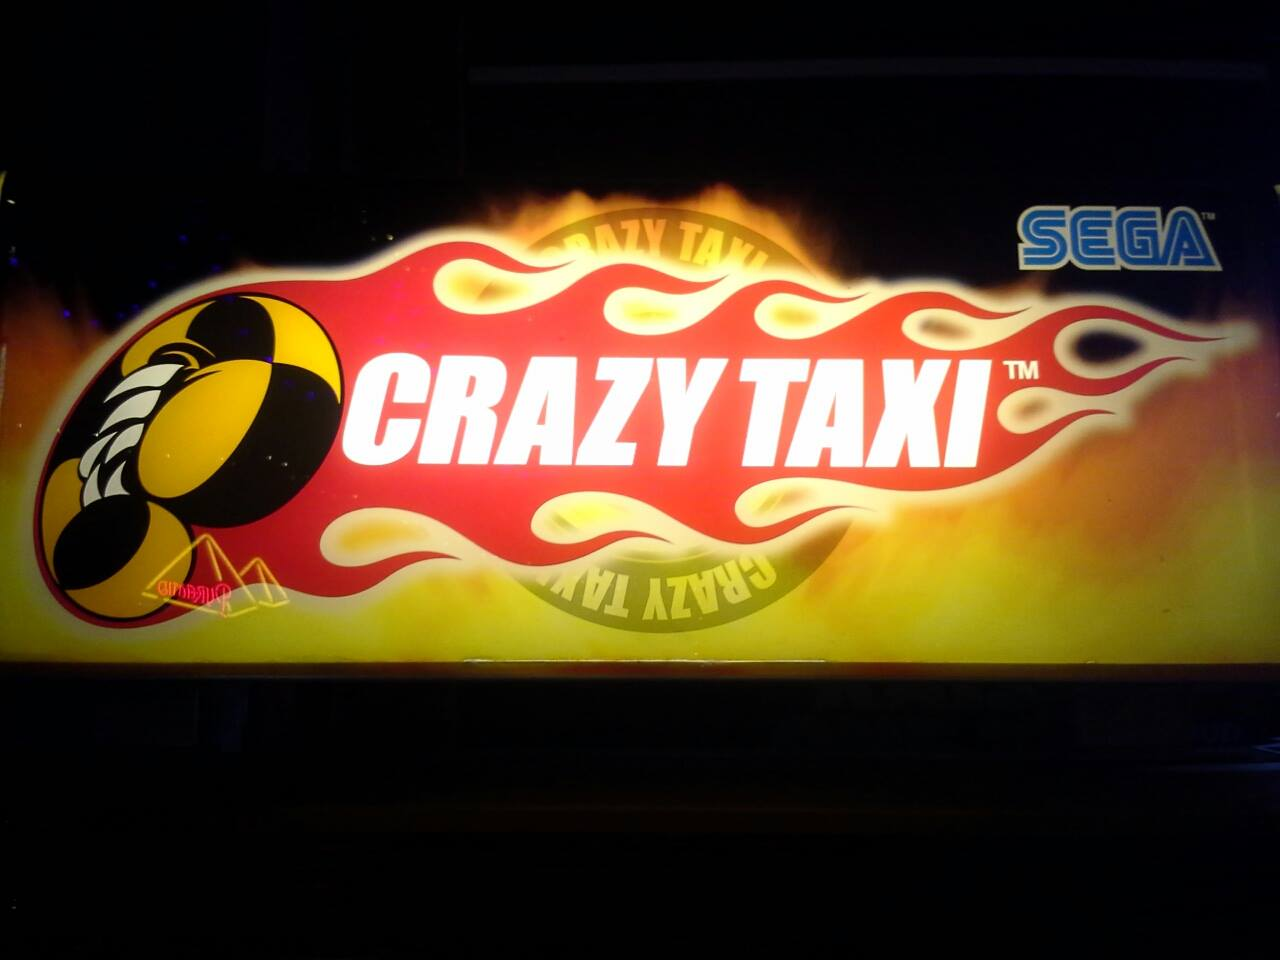 Crazy Taxi 723 points